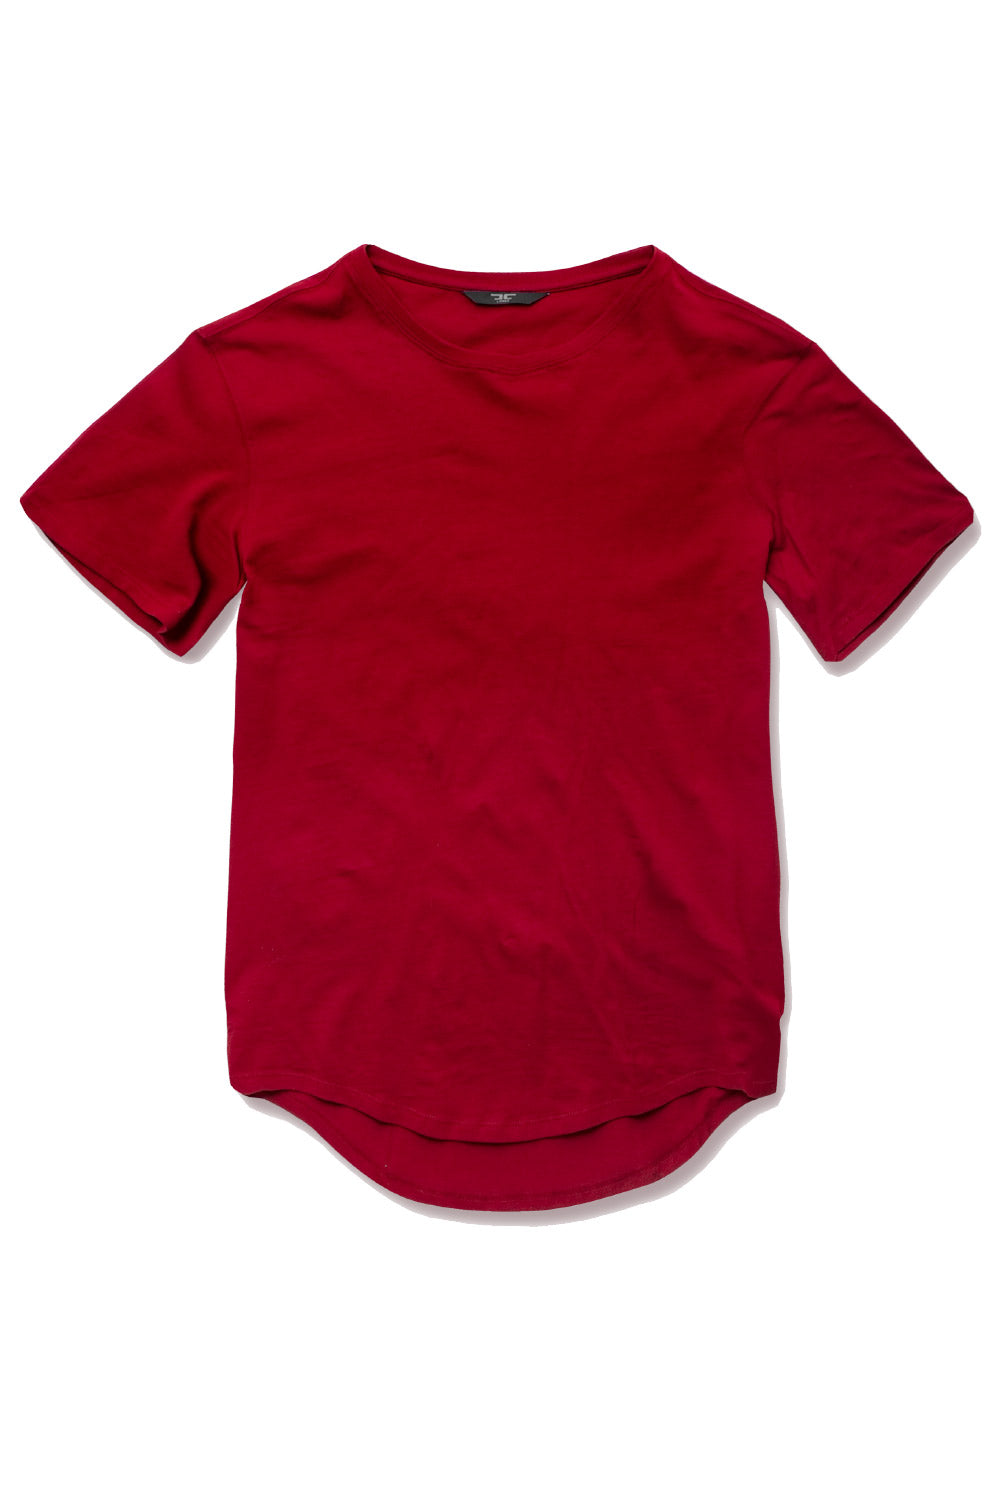 Jordan Craig - Kids Scallop T-Shirt (Red)